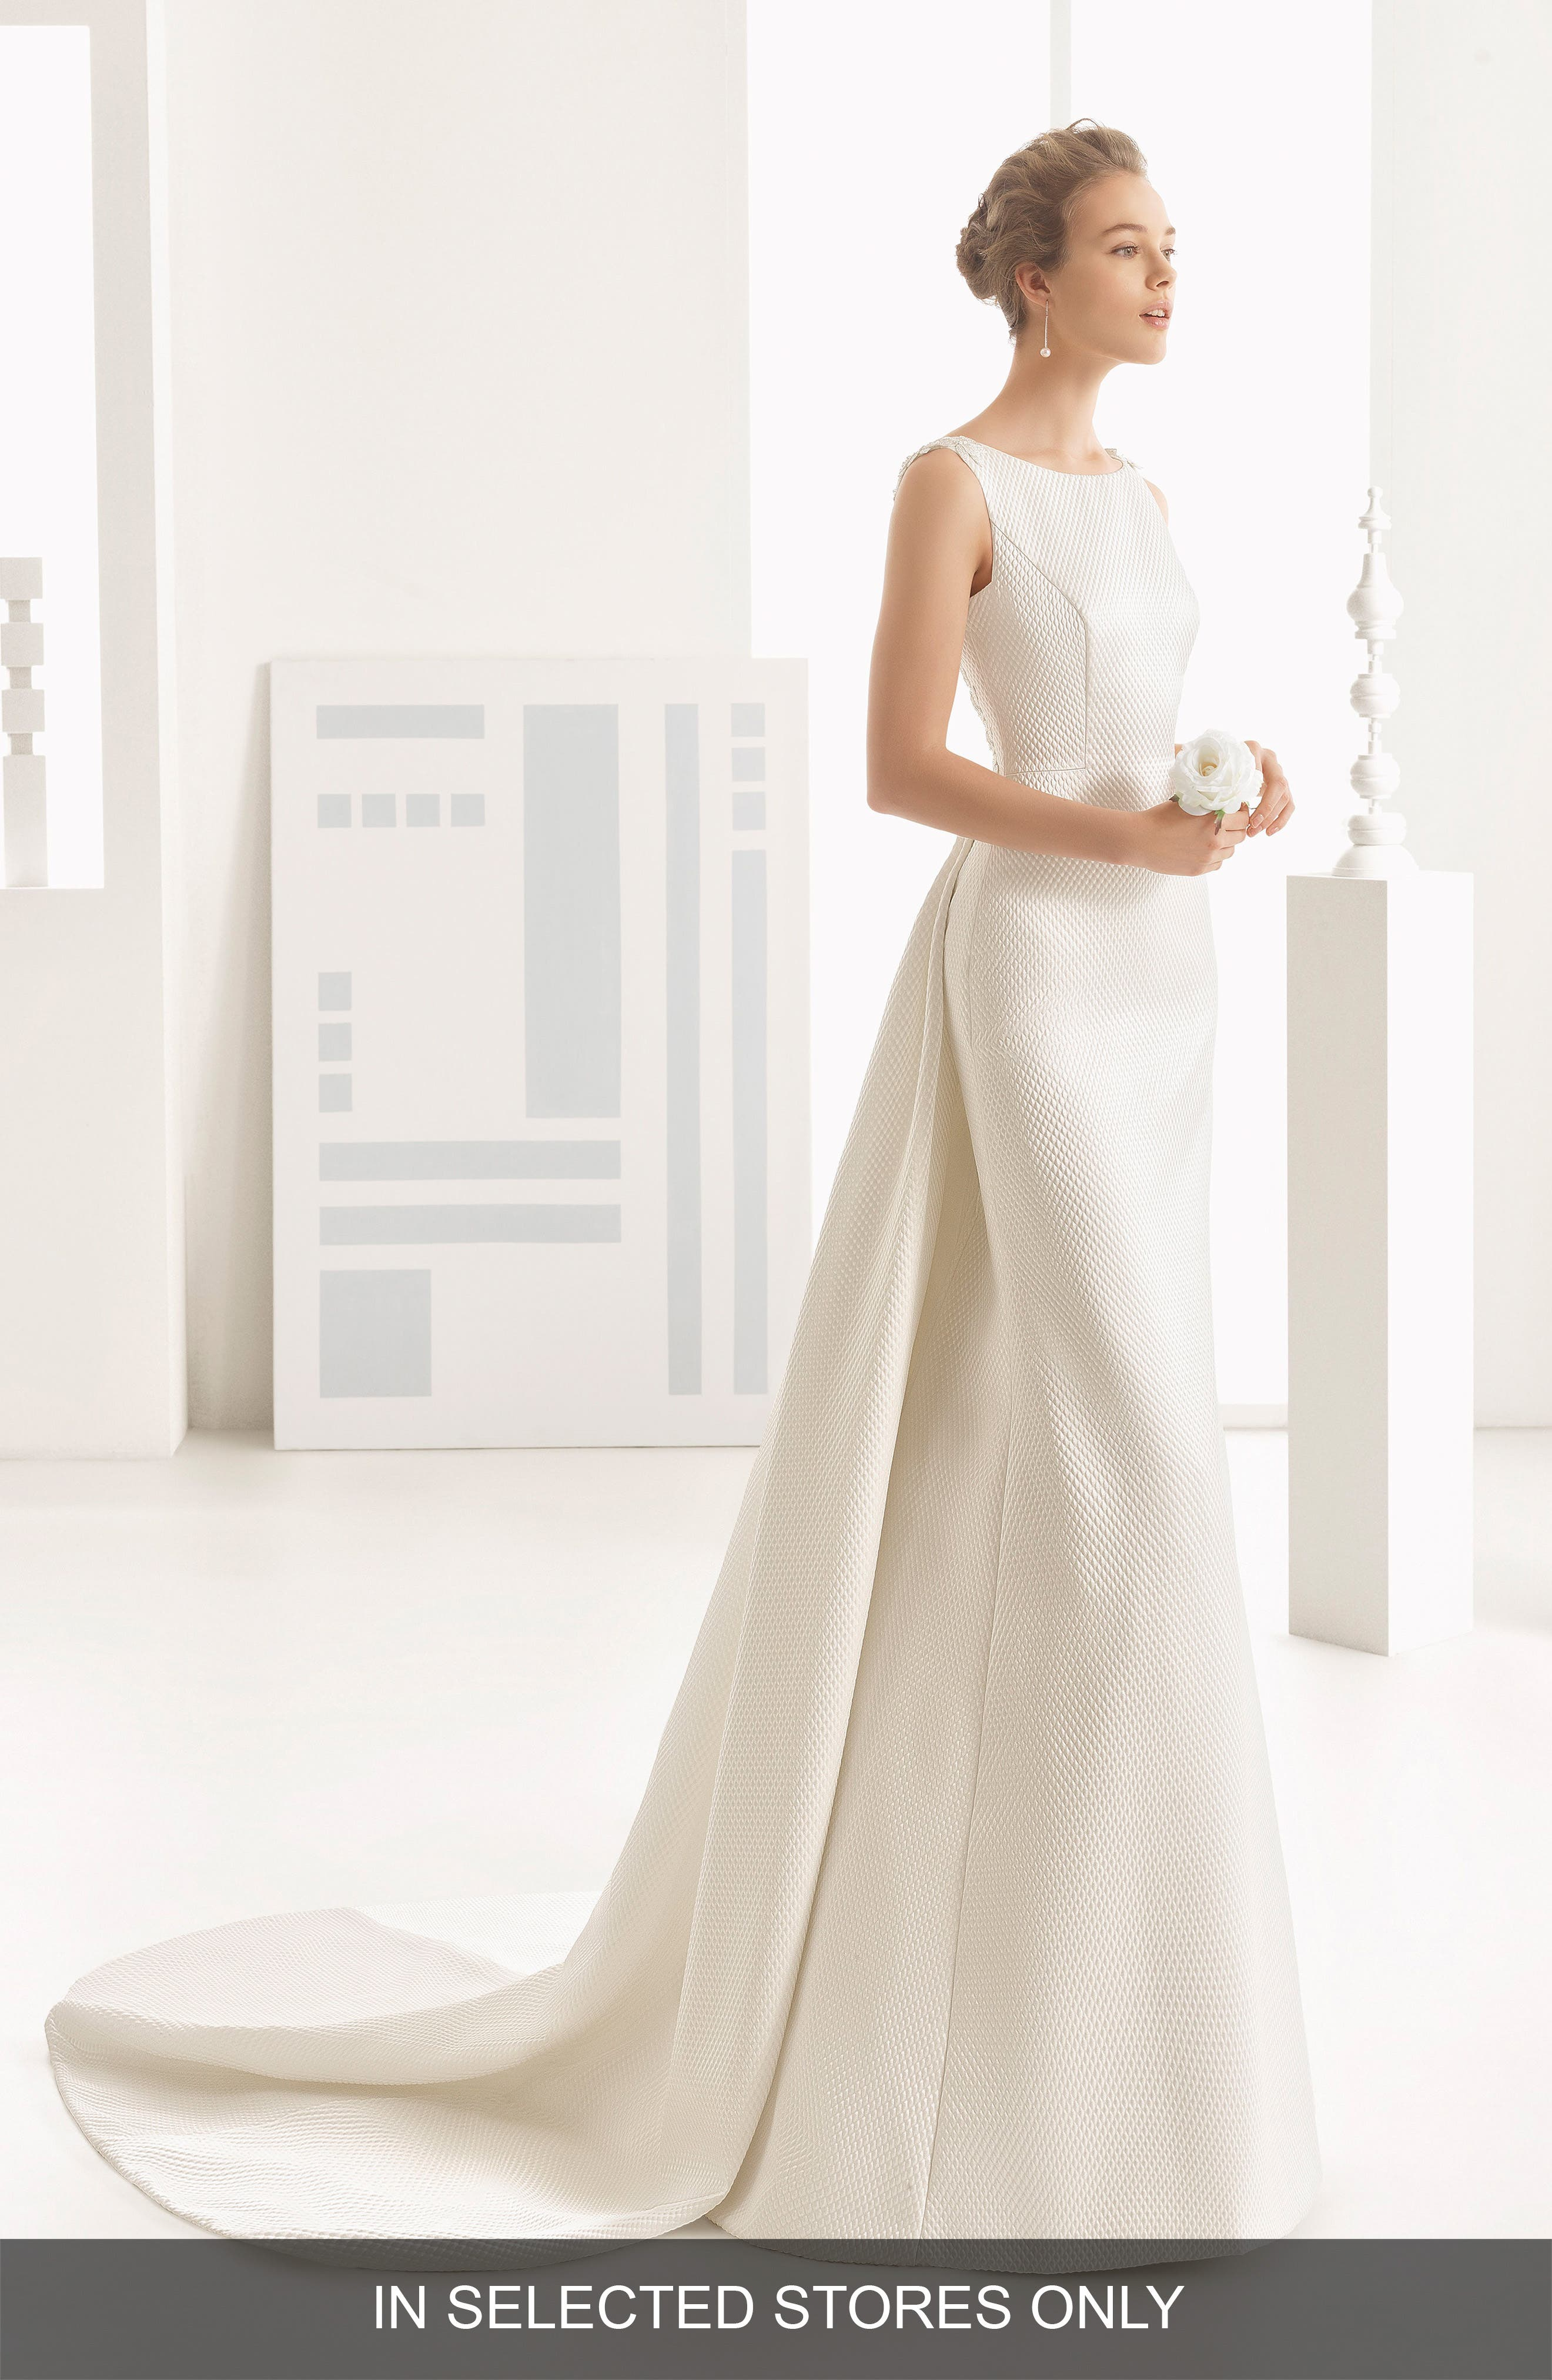 Rosa Clará Couture Navas Embellished Piqué Column Gown with Train,                             Main thumbnail 1, color,                             NATURAL